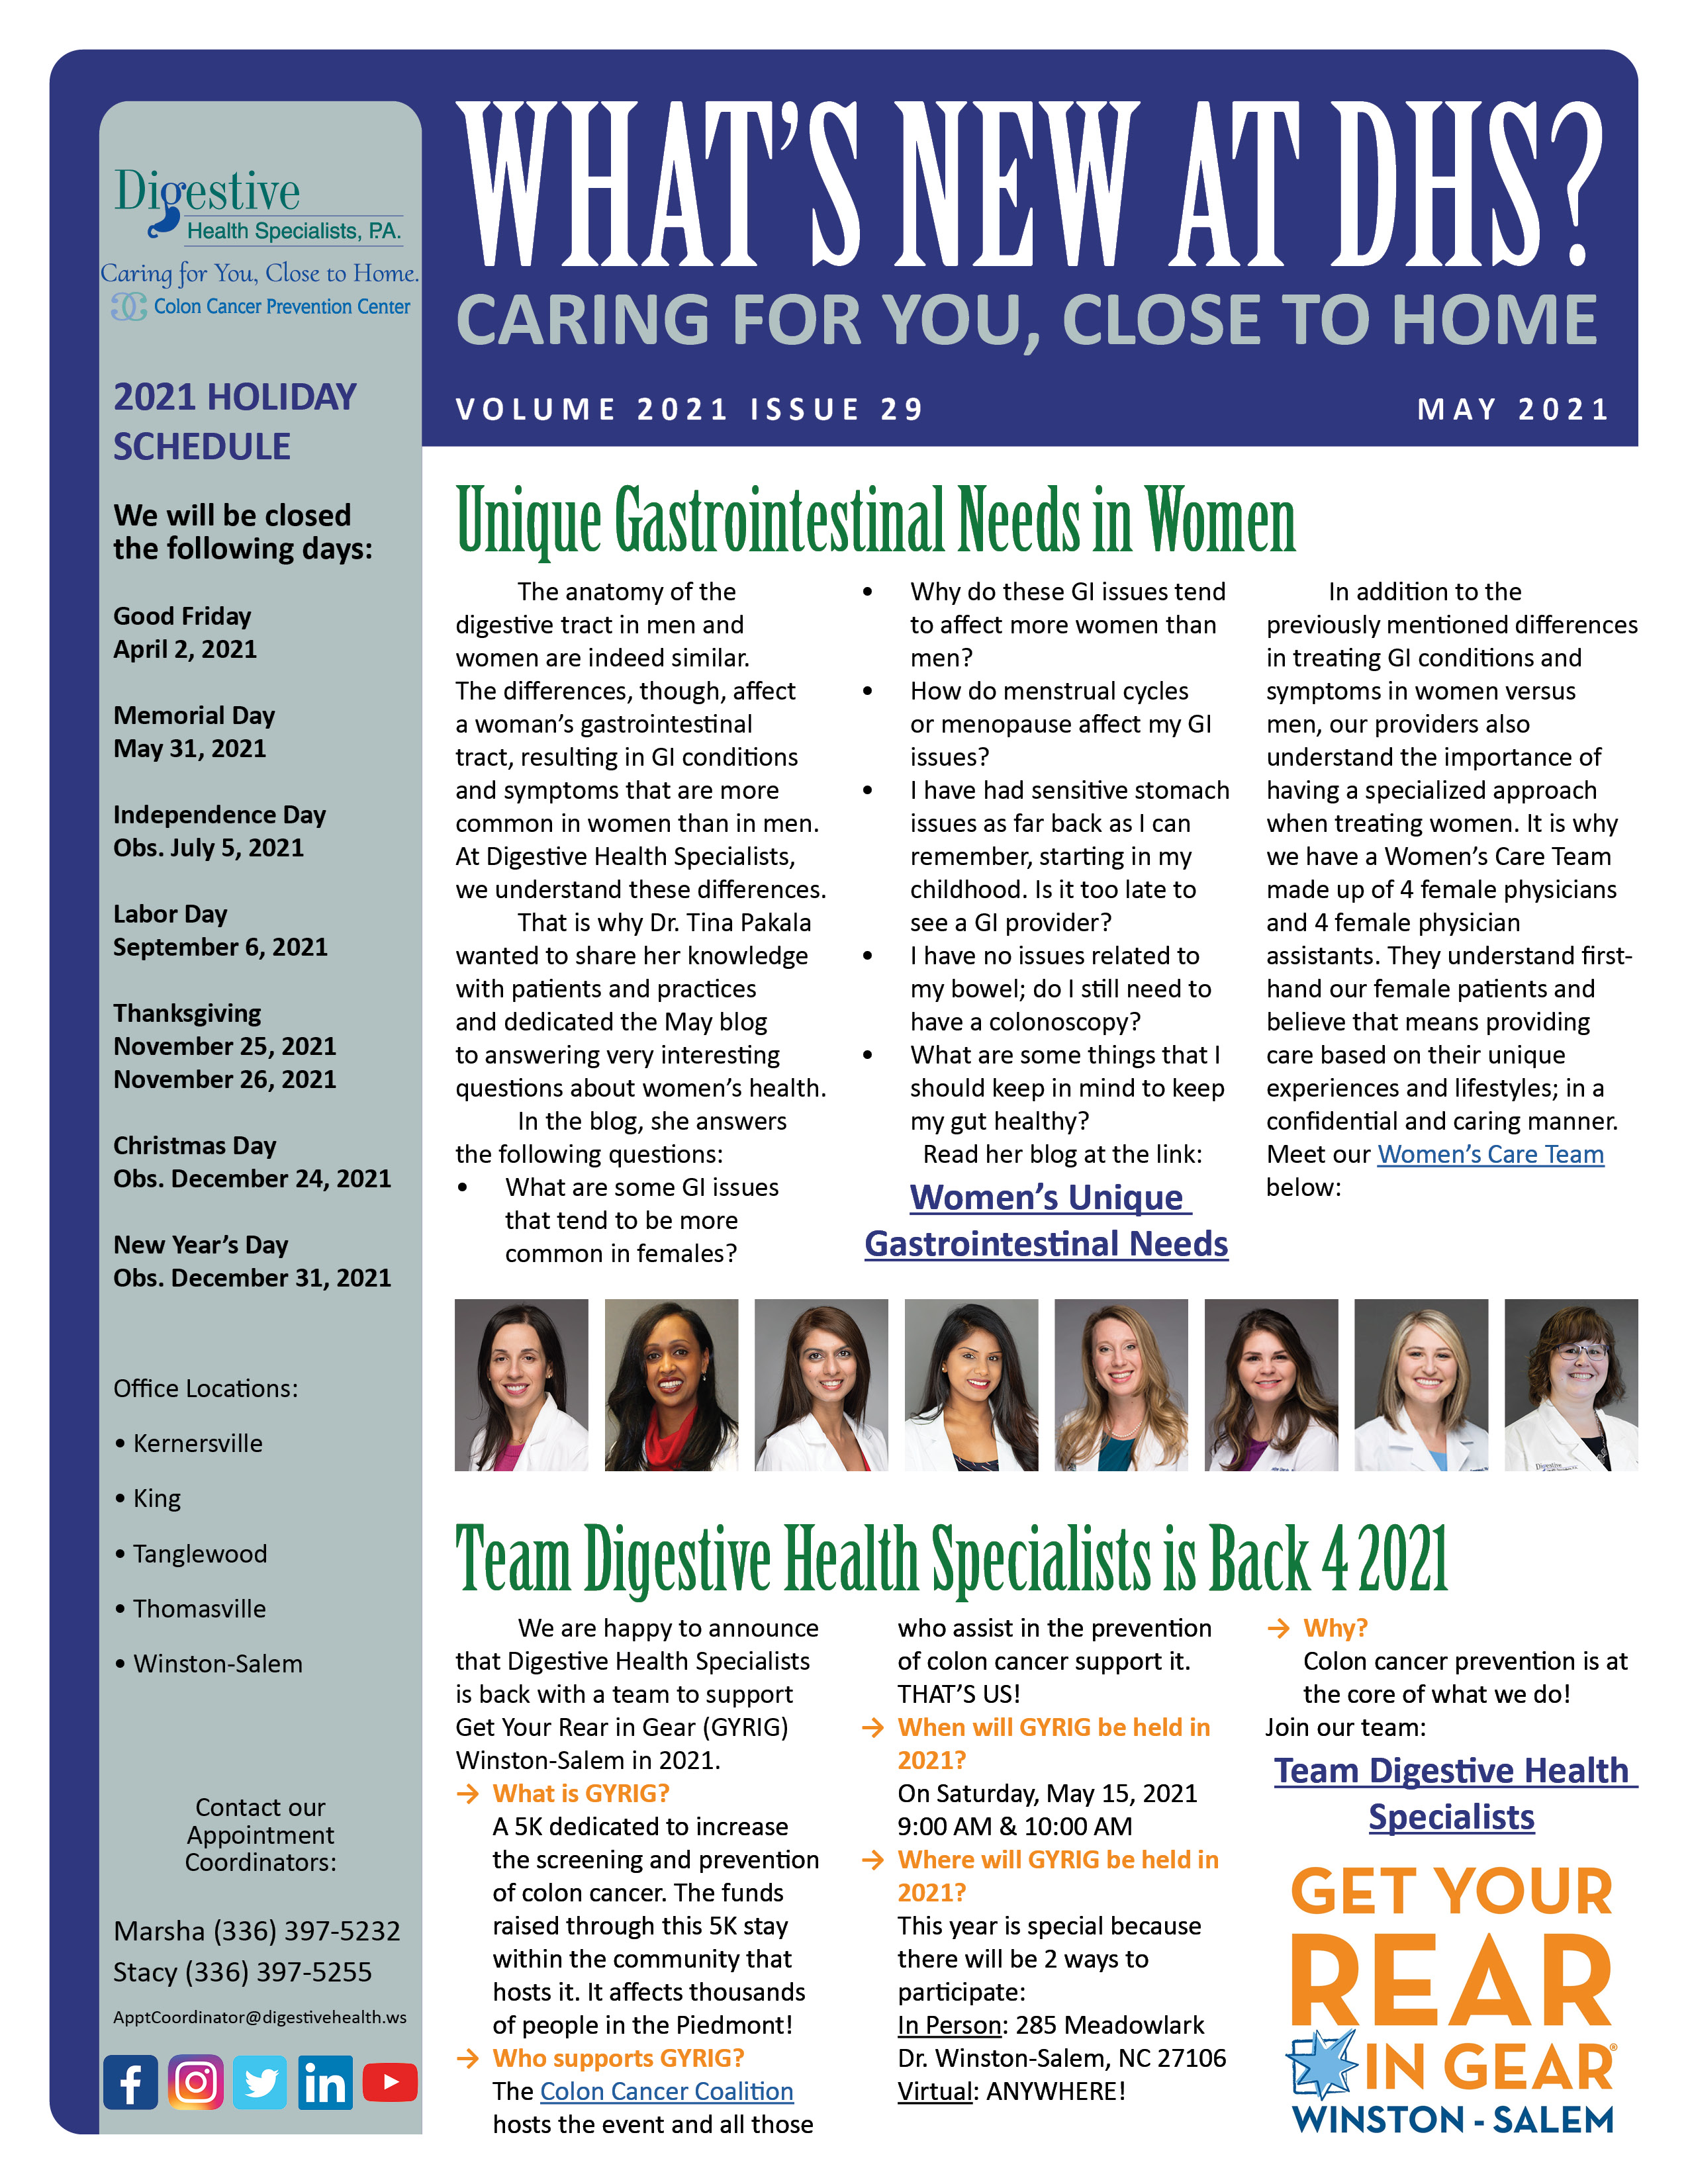 May 2021 Newsletter for referring physicians about women's gastrointestinal health